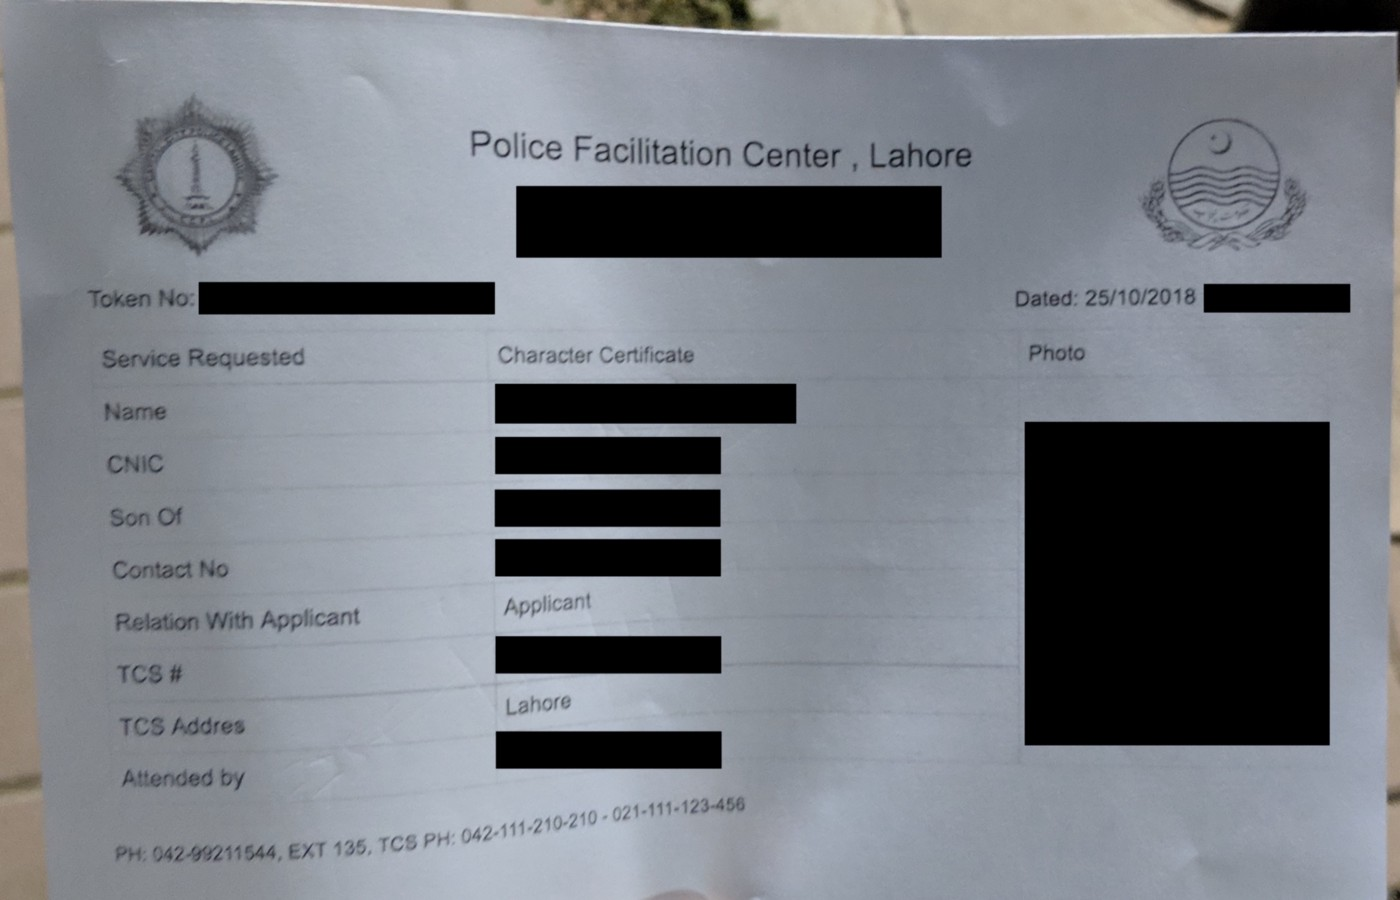 How to Get Your Police Character Certificate in Lahore, Pakistan